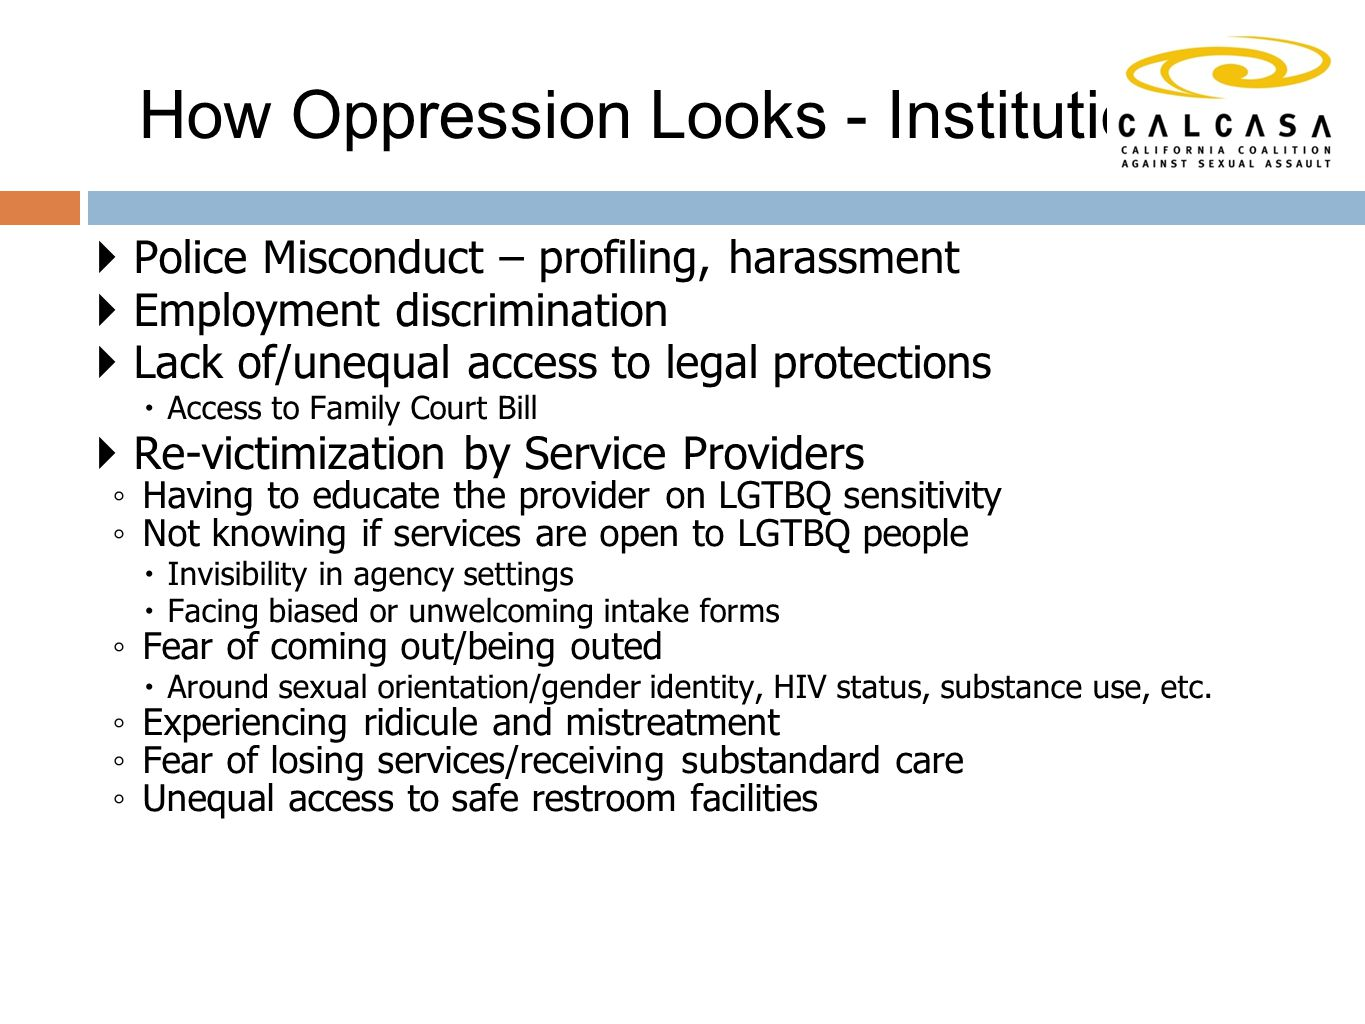  Police Misconduct – profiling, harassment  Employment discrimination  Lack of/unequal access to legal protections  Access to Family Court Bill  Re-victimization by Service Providers ◦ Having to educate the provider on LGTBQ sensitivity ◦ Not knowing if services are open to LGTBQ people  Invisibility in agency settings  Facing biased or unwelcoming intake forms ◦ Fear of coming out/being outed  Around sexual orientation/gender identity, HIV status, substance use, etc.